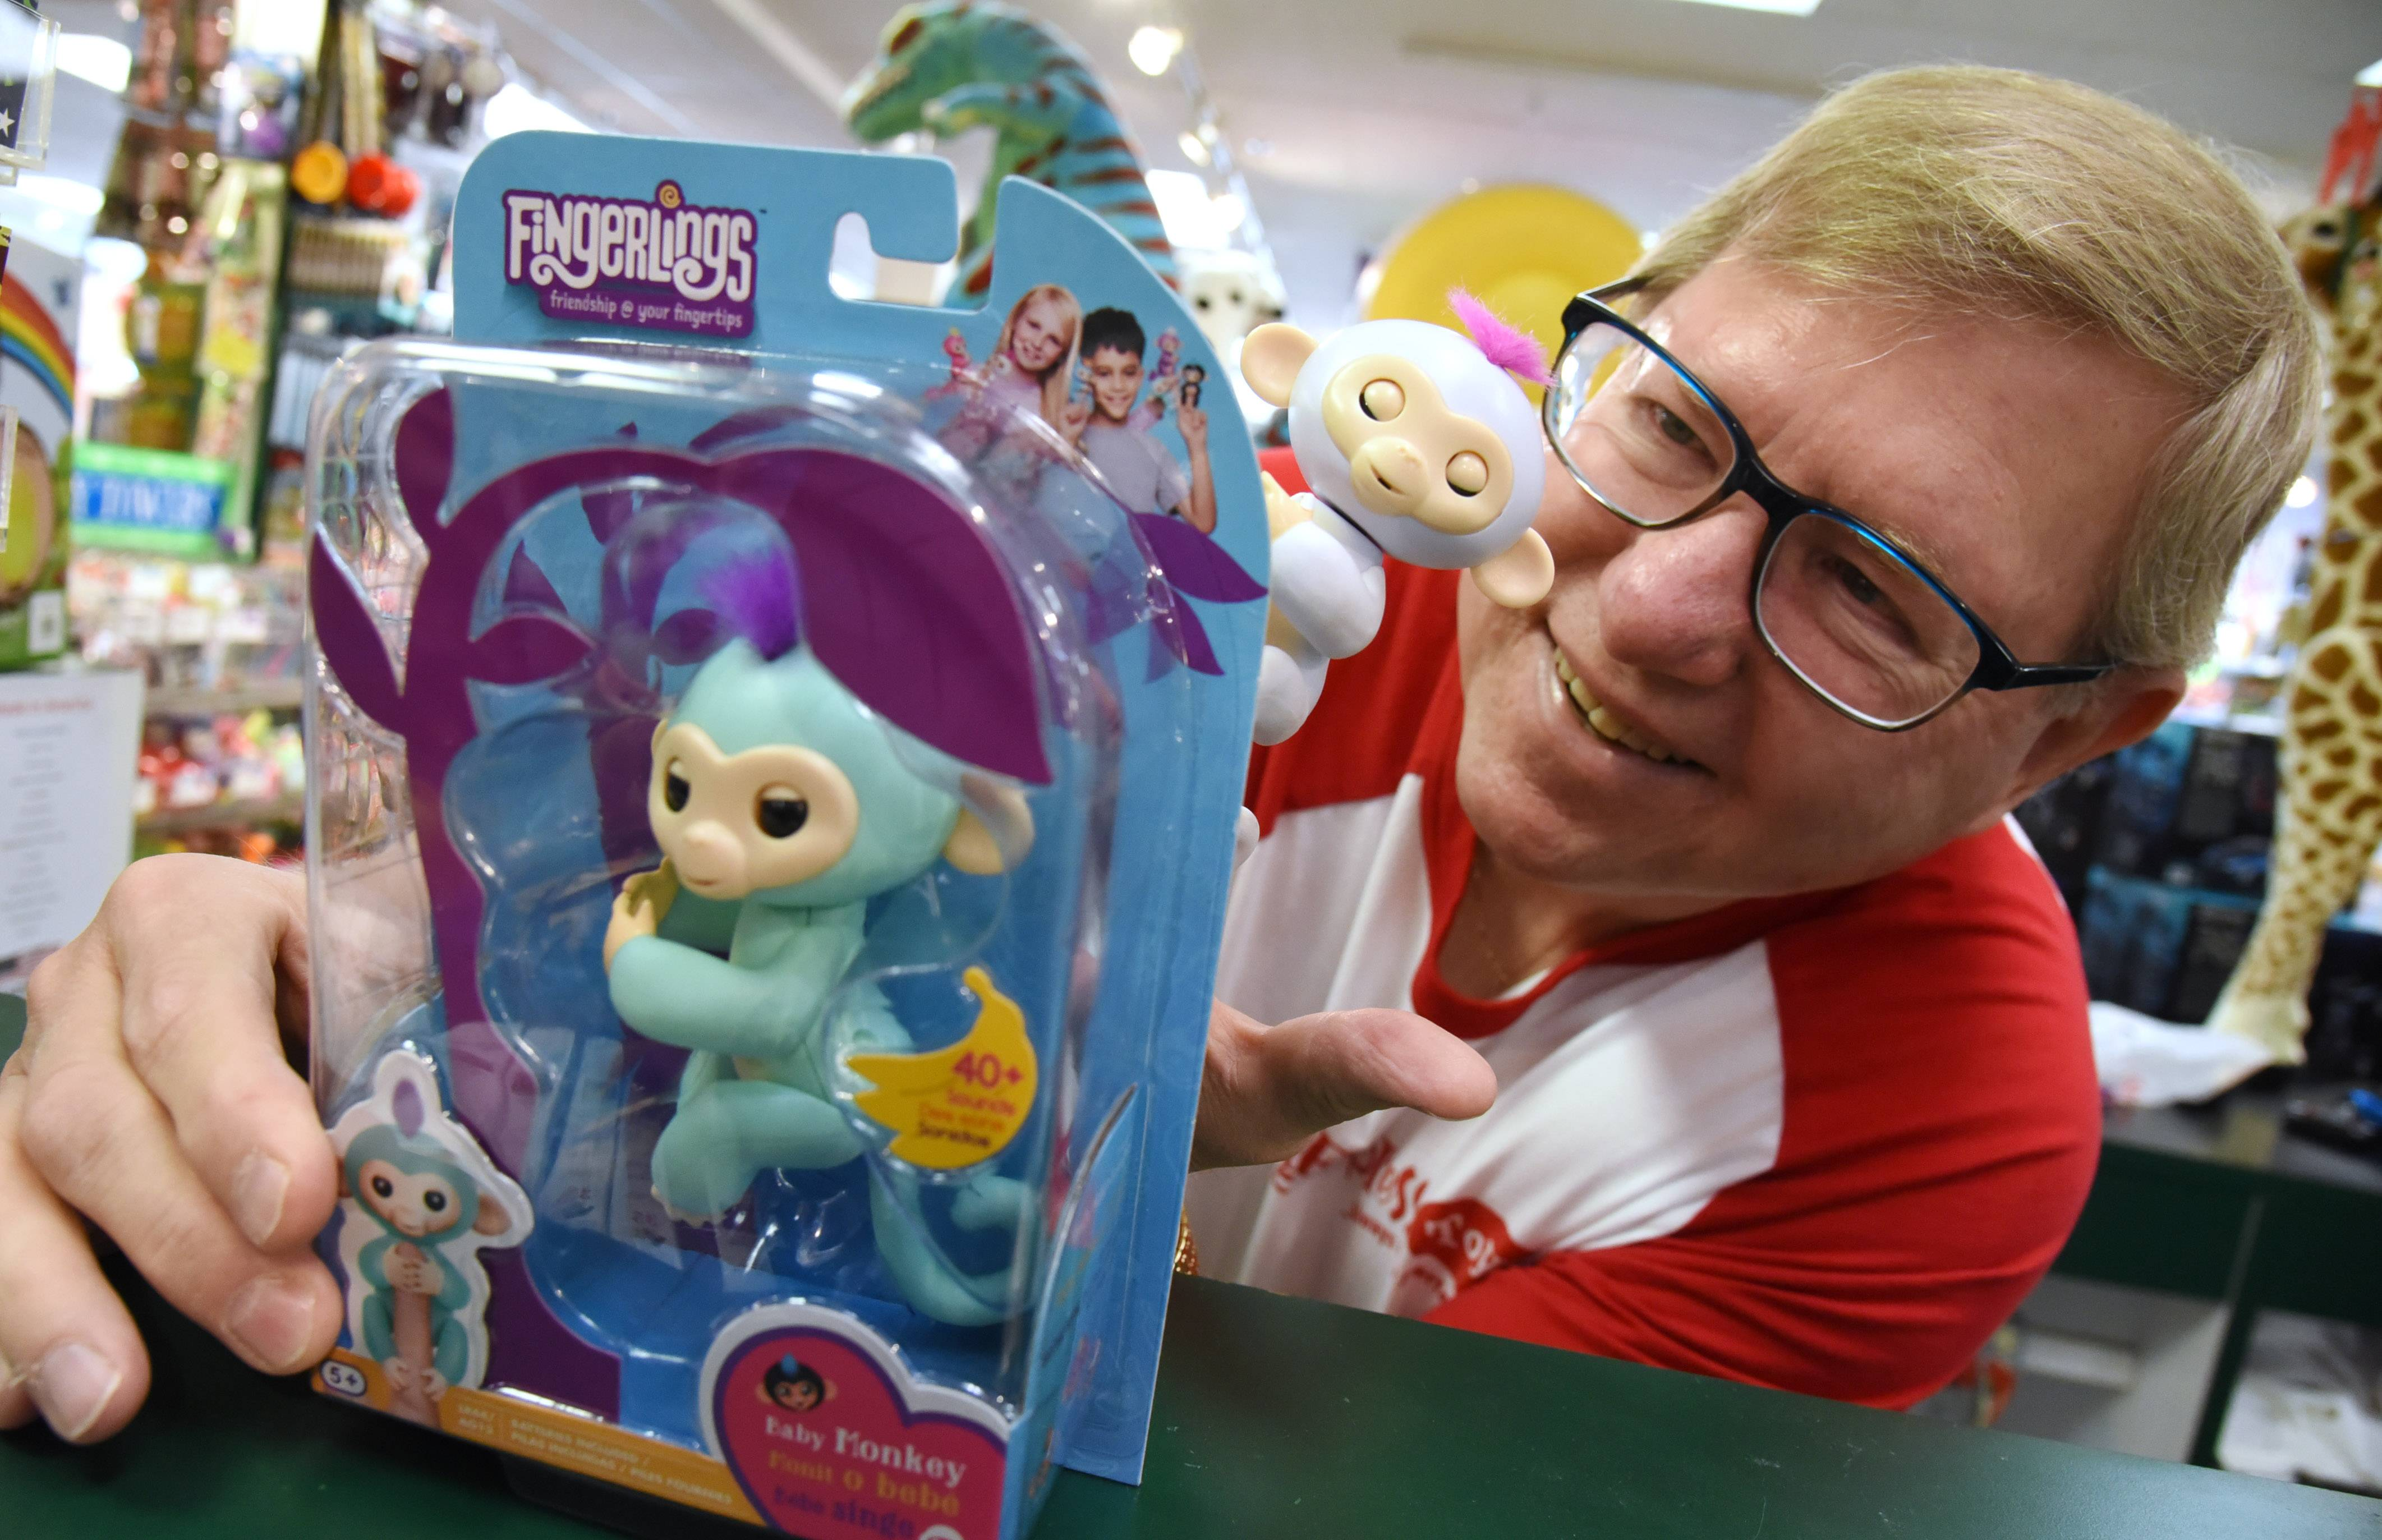 Lake Zurich Learning Express owner Richard Derr shows off one of this season's hottest new toys, the Fingerlings.